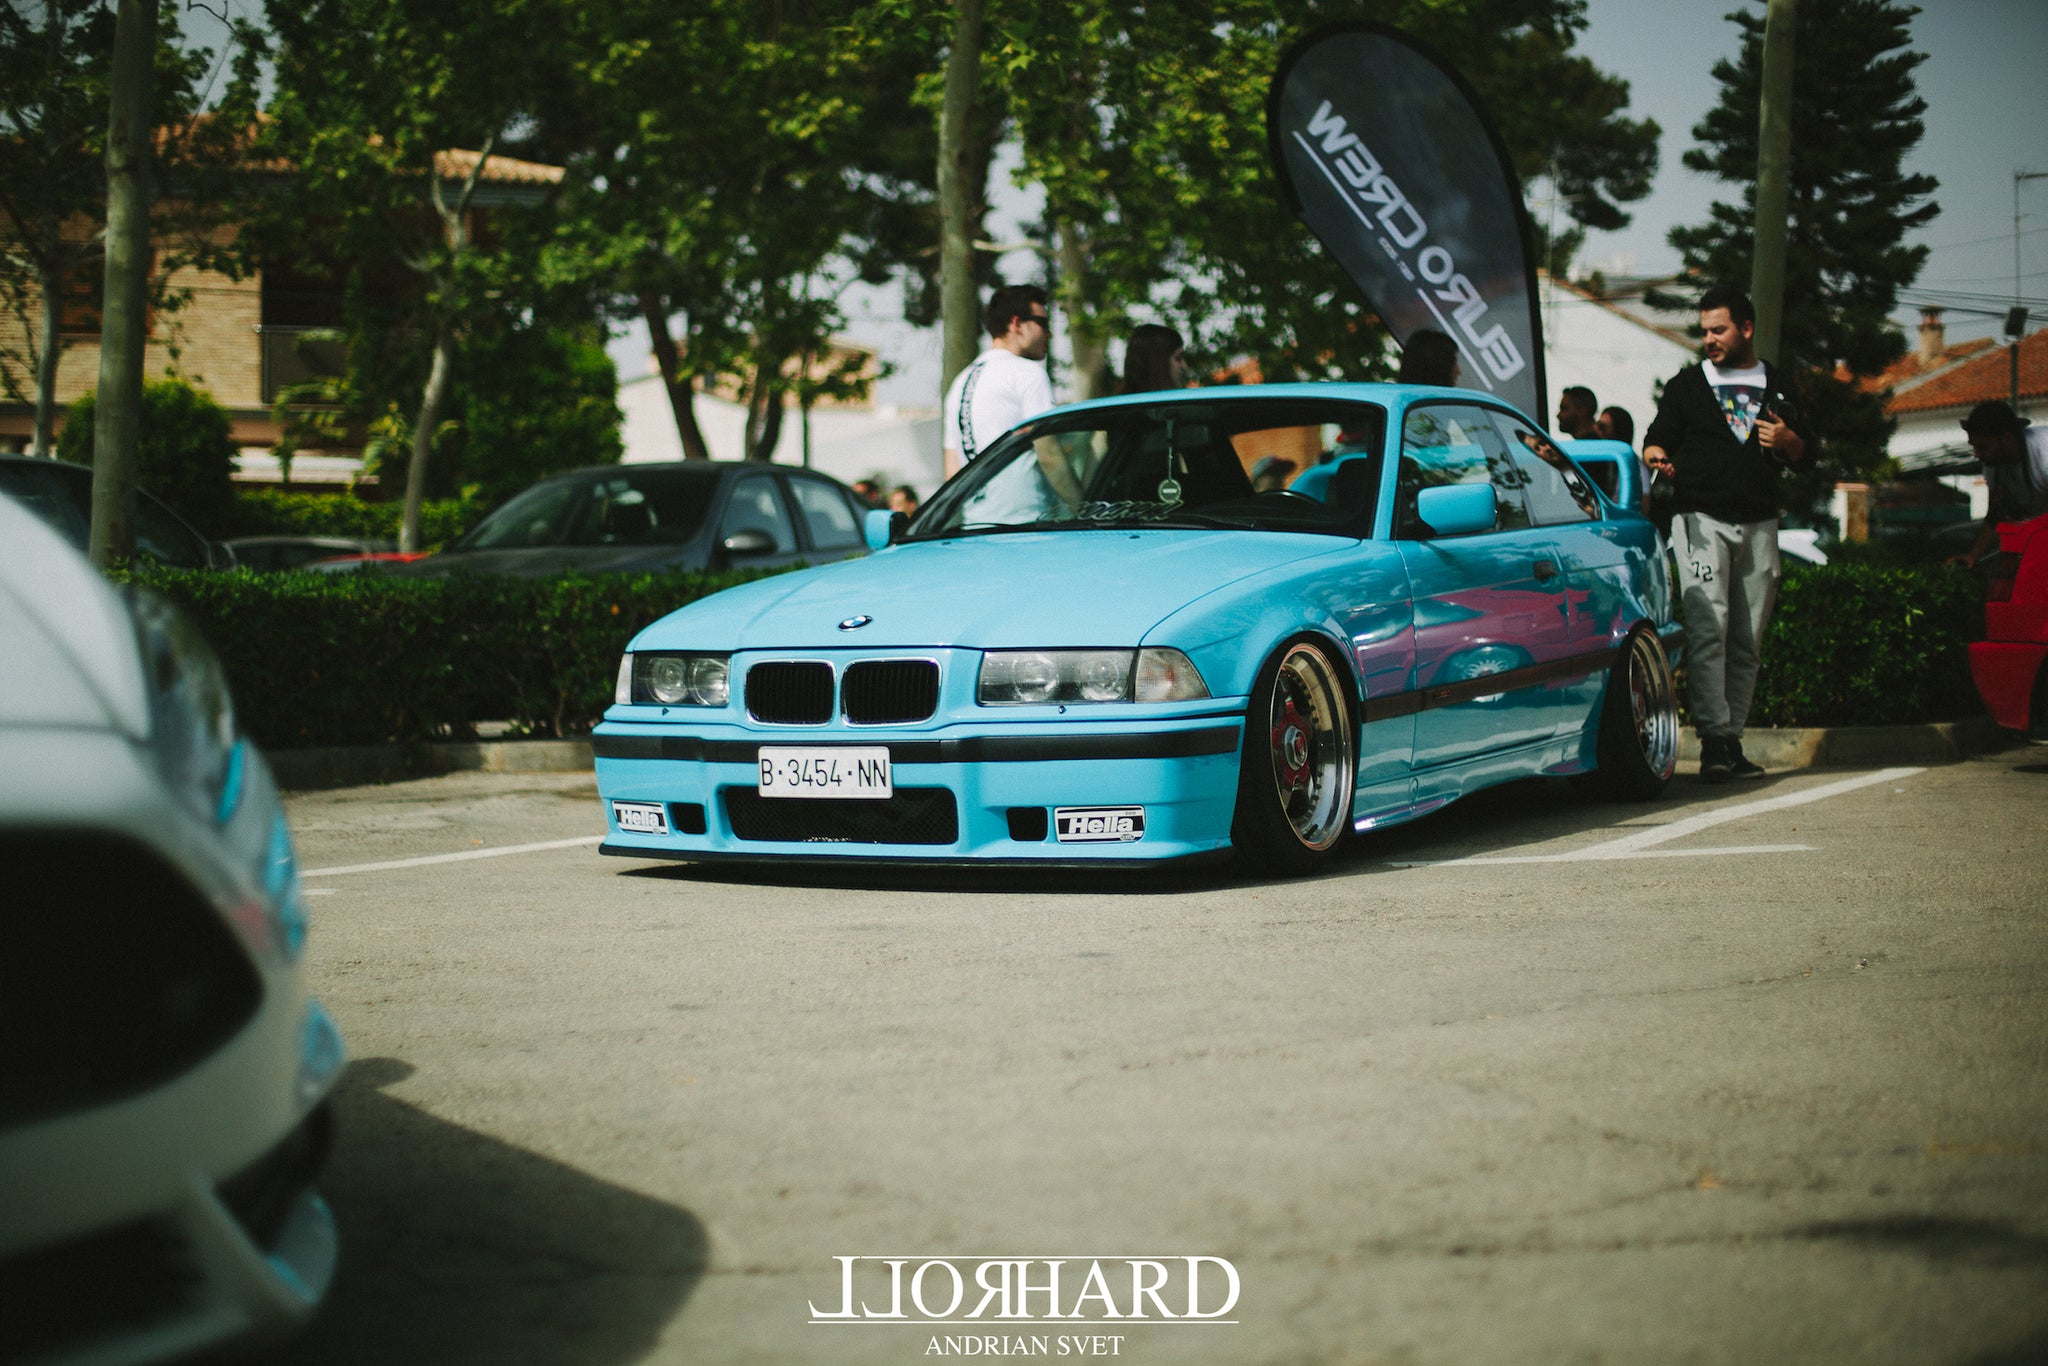 Eurocrew Valencia, Spain 2018. Event coverage RollHard show blog Spanish car culture, Euro cars, Spanish scene.